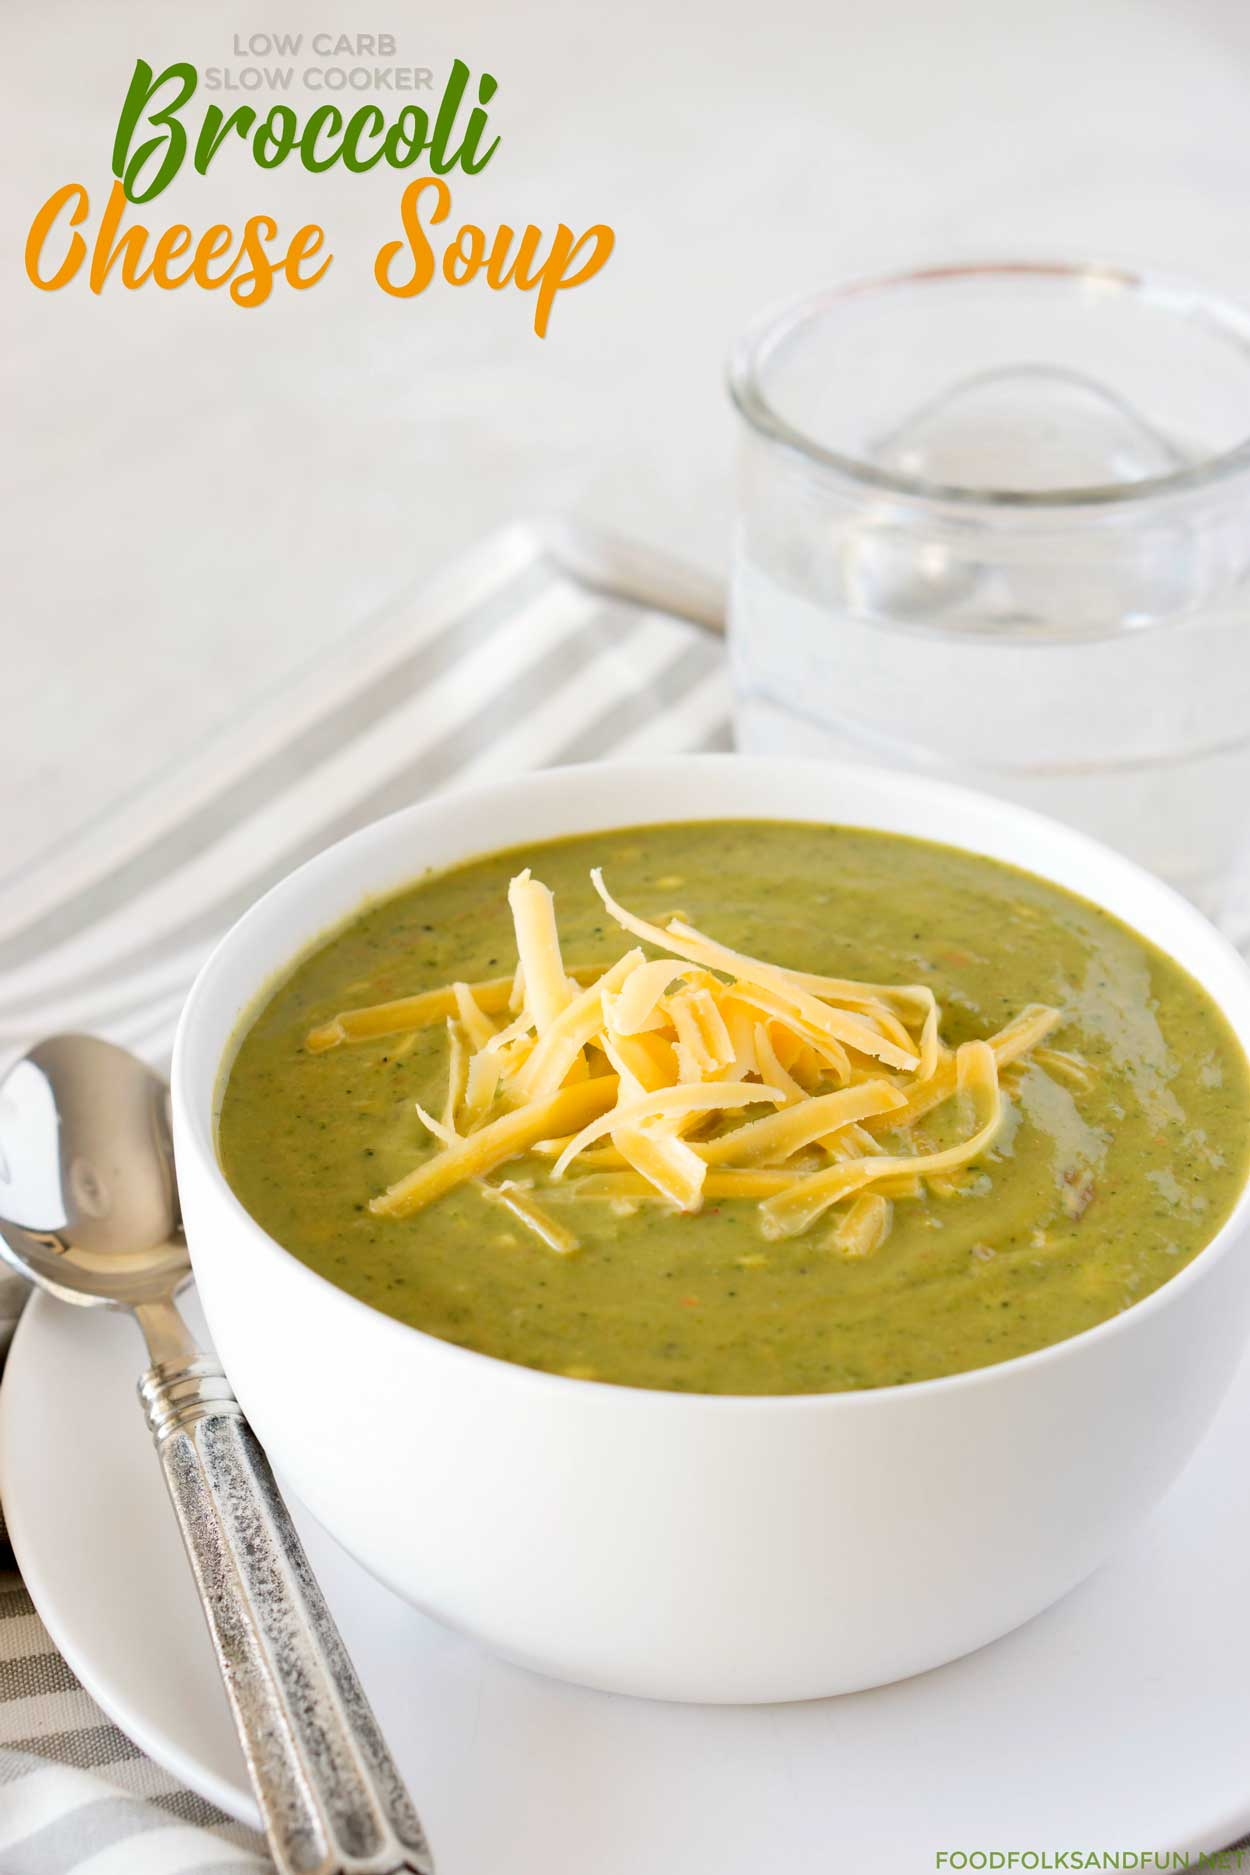 Best Low Carb Broccoli Cheese Soup